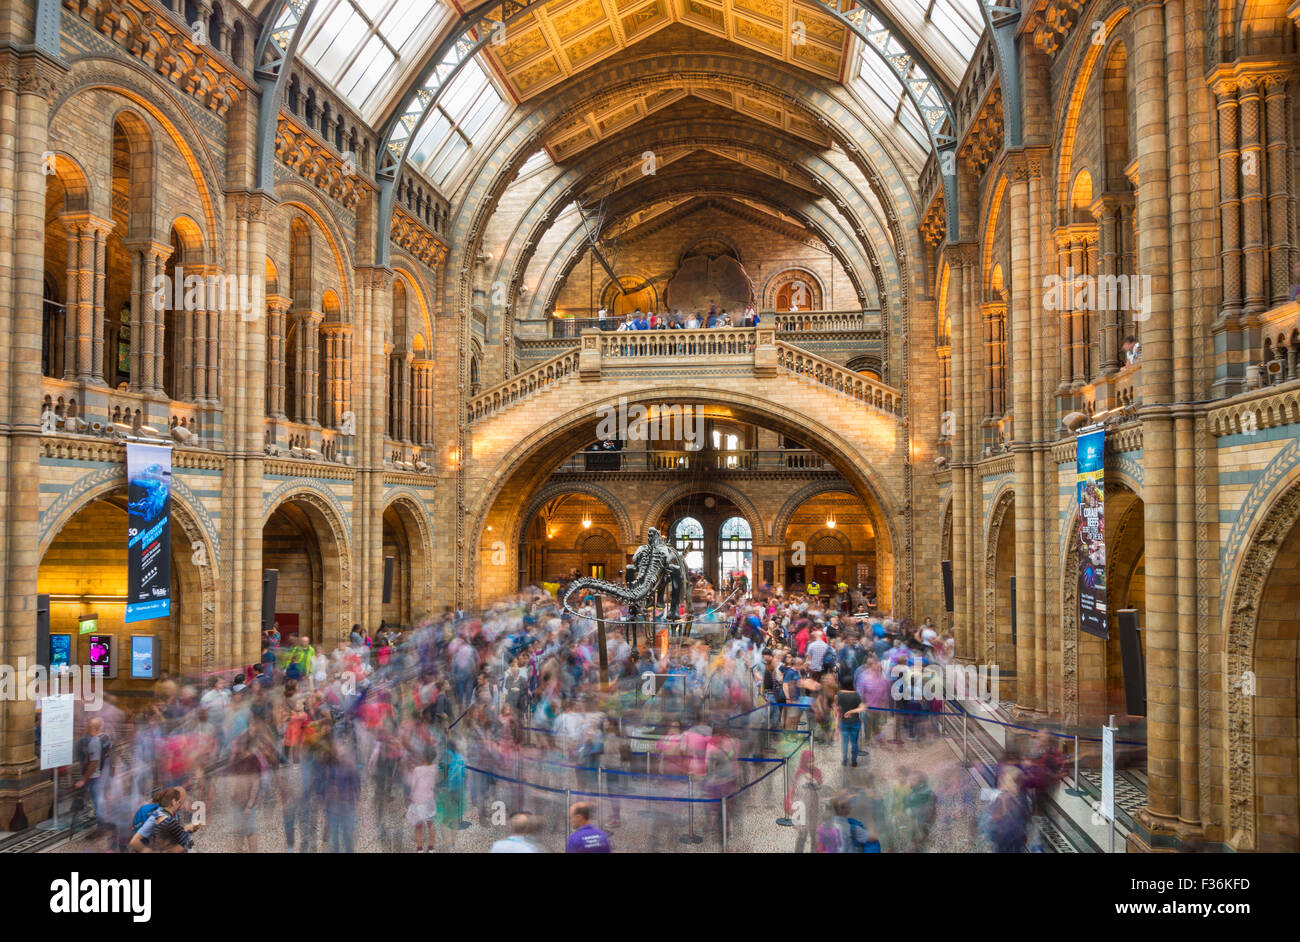 Visitors inside the Central hall of the Natural History Museum  Exhibition road South Kensington London England - Stock Image